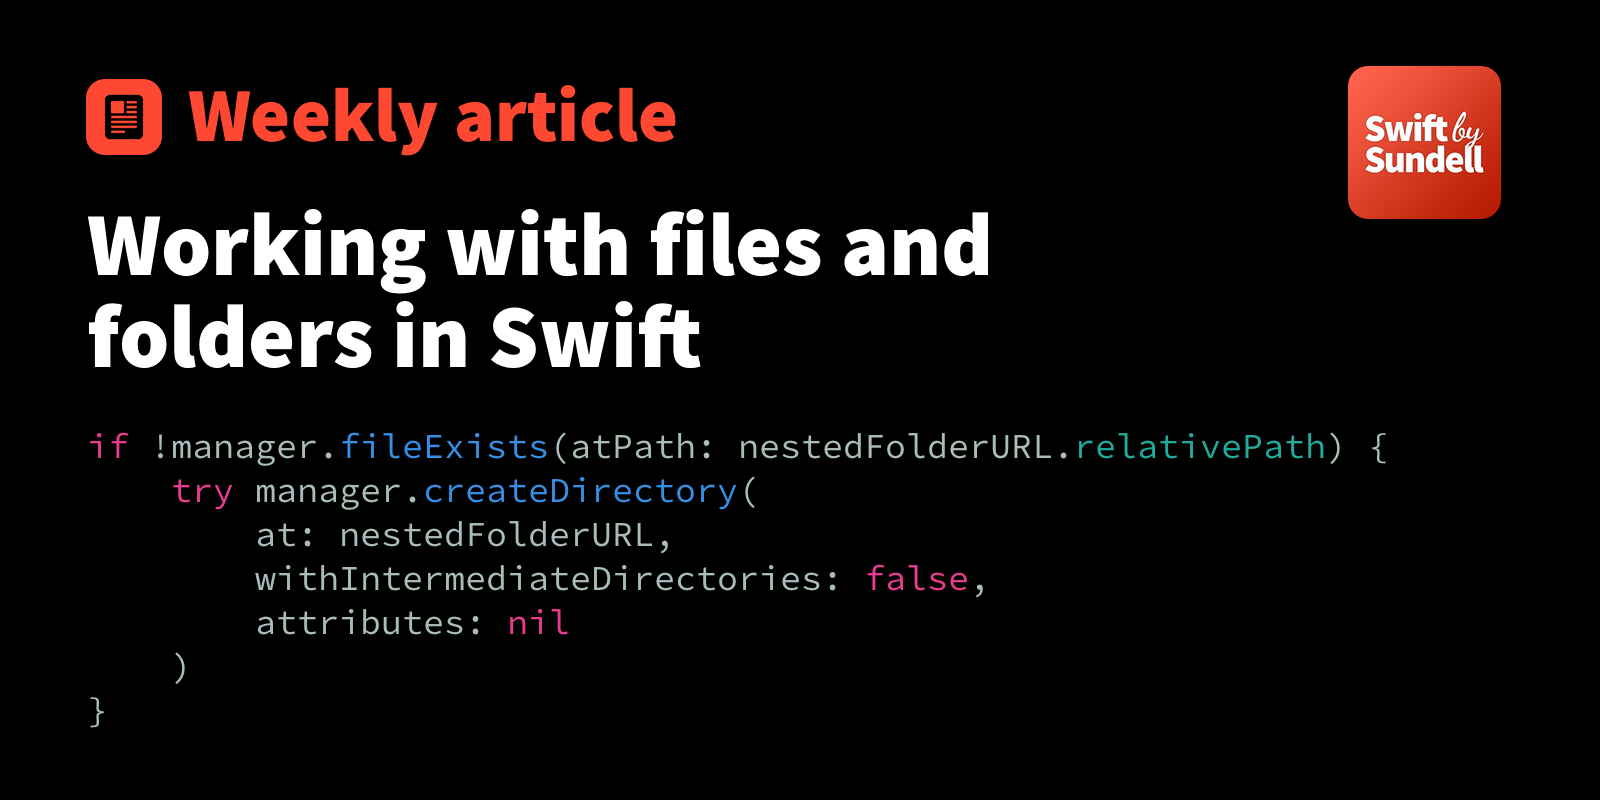 Working with files and folders in Swift | Swift by Sundell